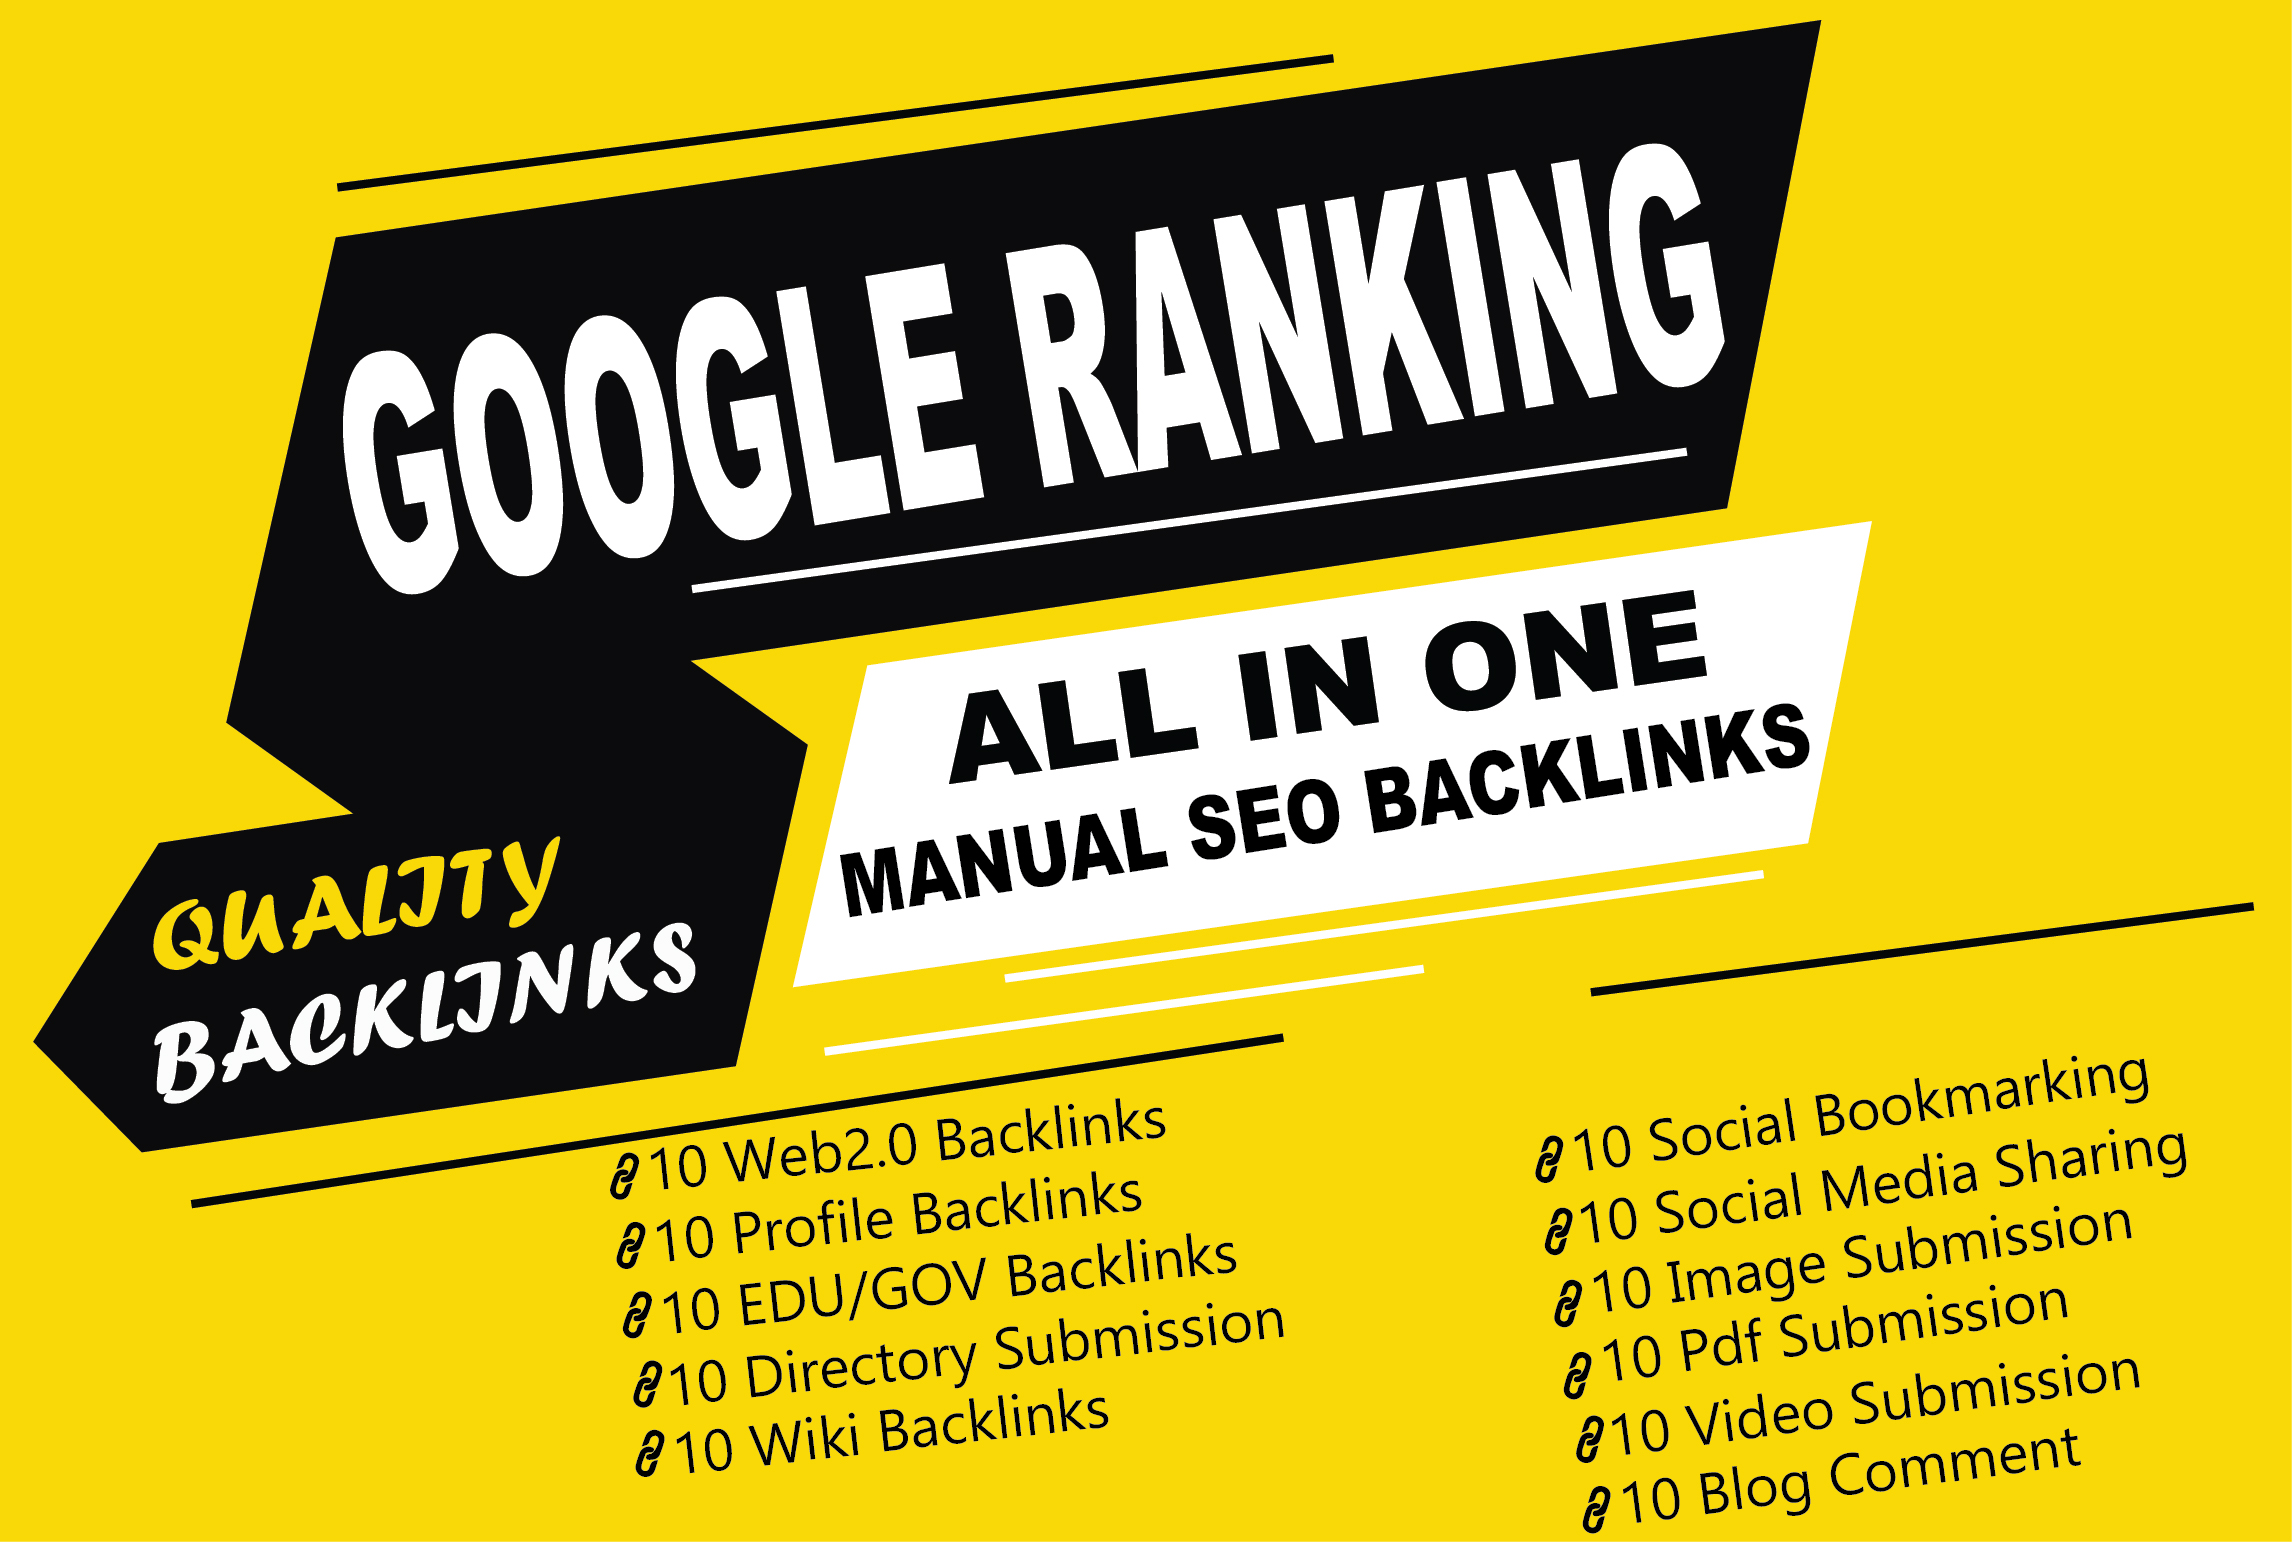 All In One SEO Backlinks Link Building Service